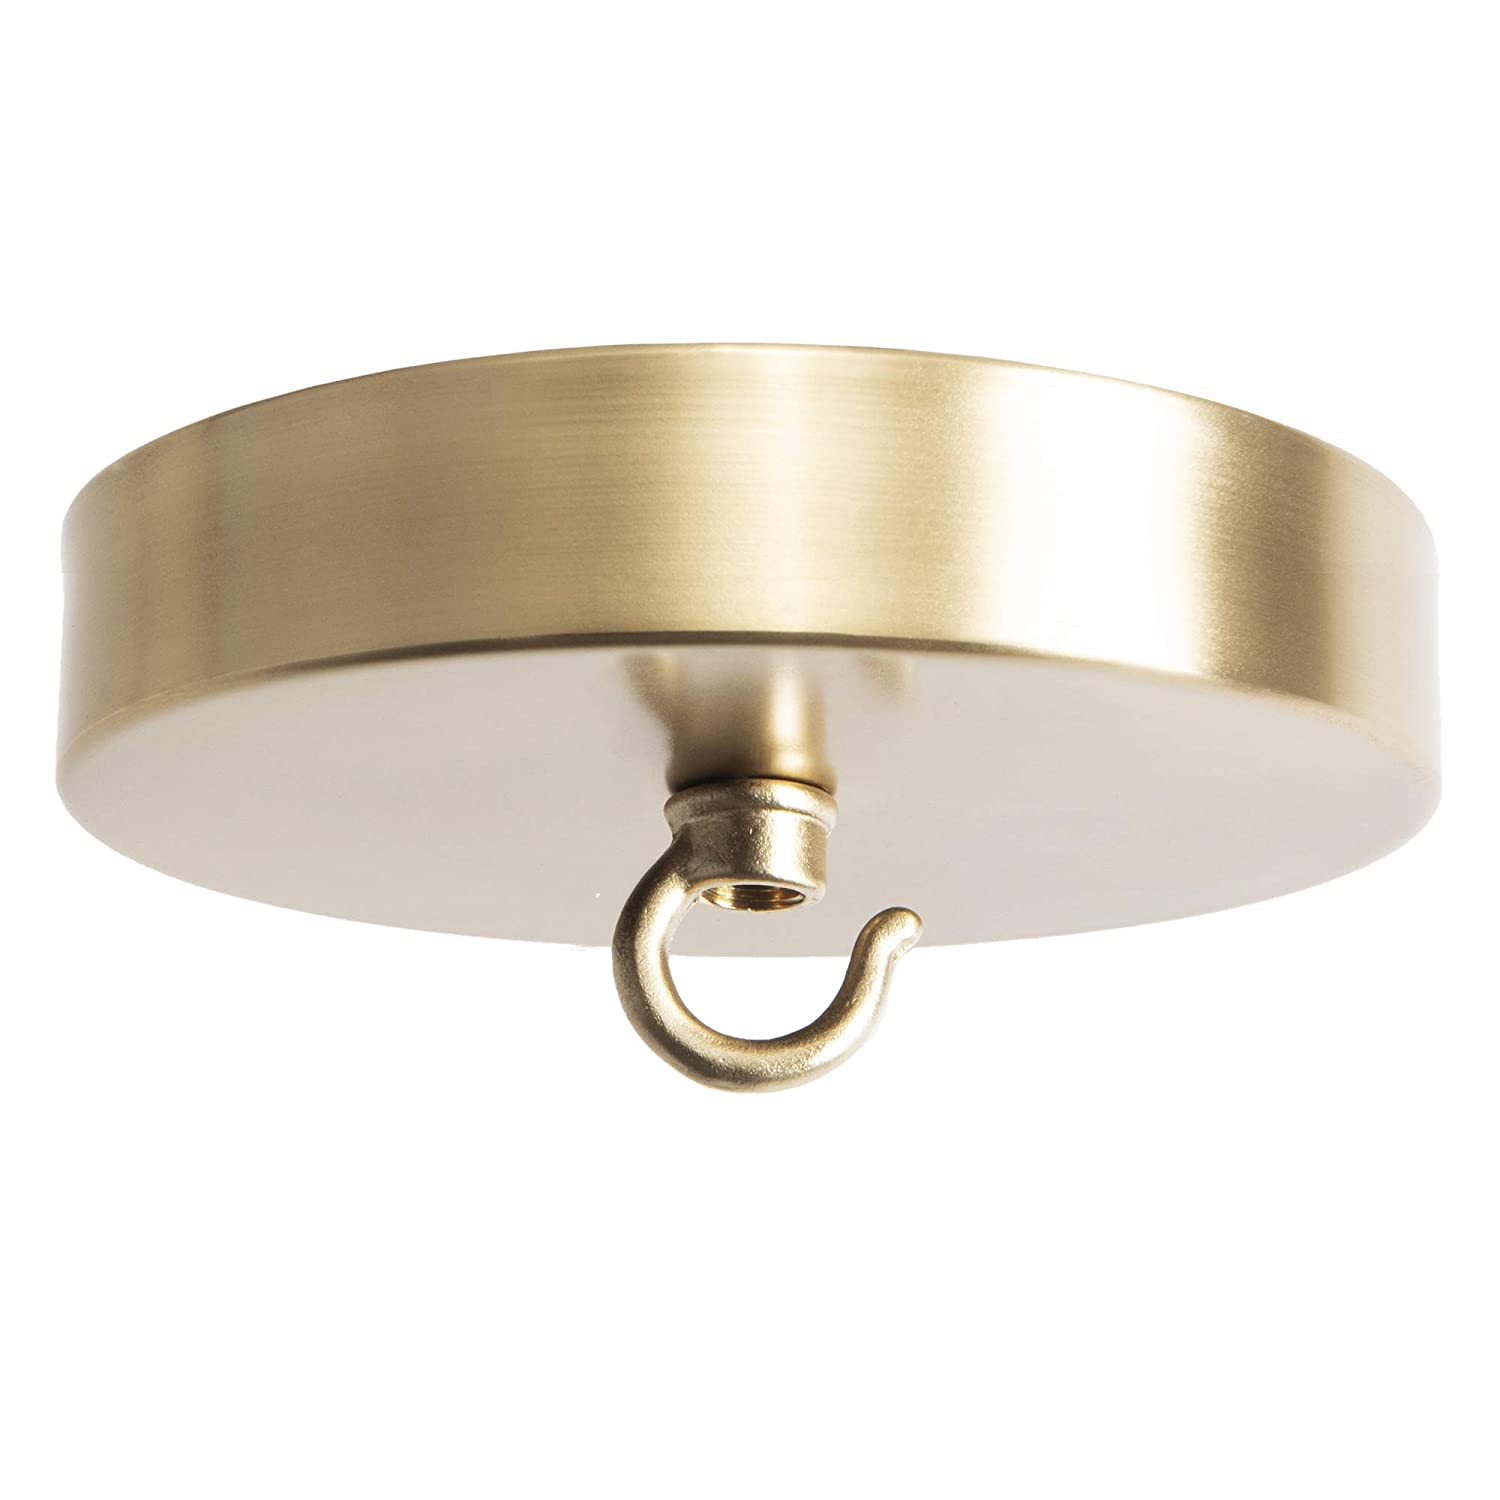 5 diameter ceiling light cover plate chandelier mounting kit hardware for hanging chained or swag light fixtures made in usa satin brass